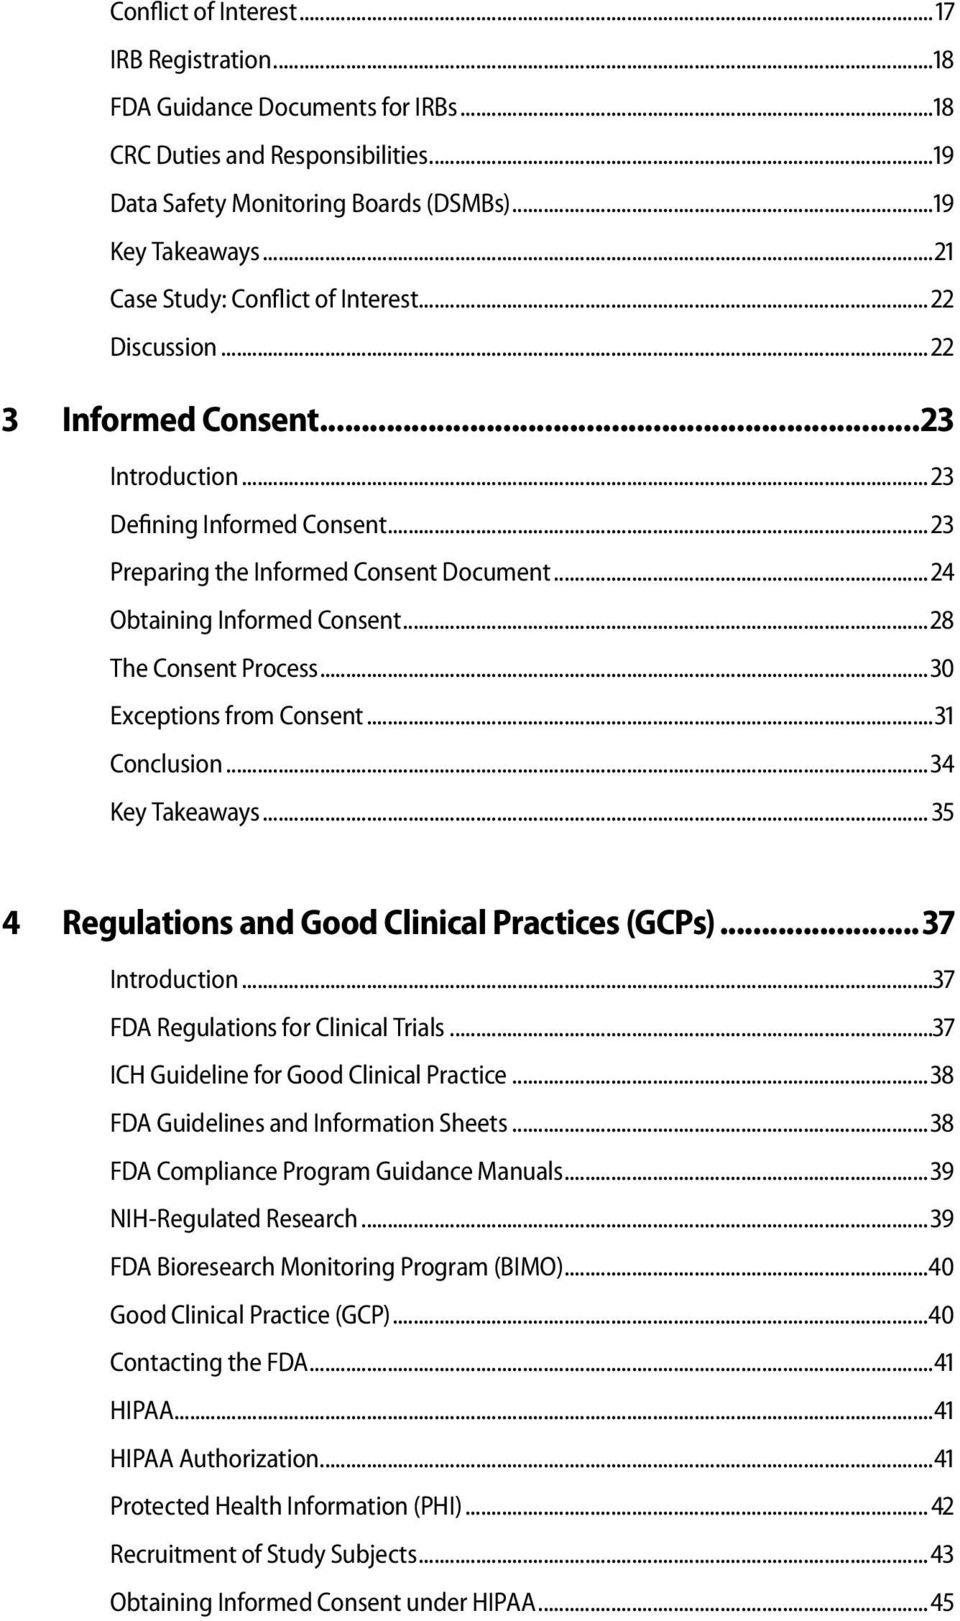 .. 24 Obtaining Informed Consent...28 The Consent Process...30 Exceptions from Consent...31 Conclusion...34 Key Takeaways... 35 4 Regulations and Good Clinical Practices (GCPs)... 37 Introduction.